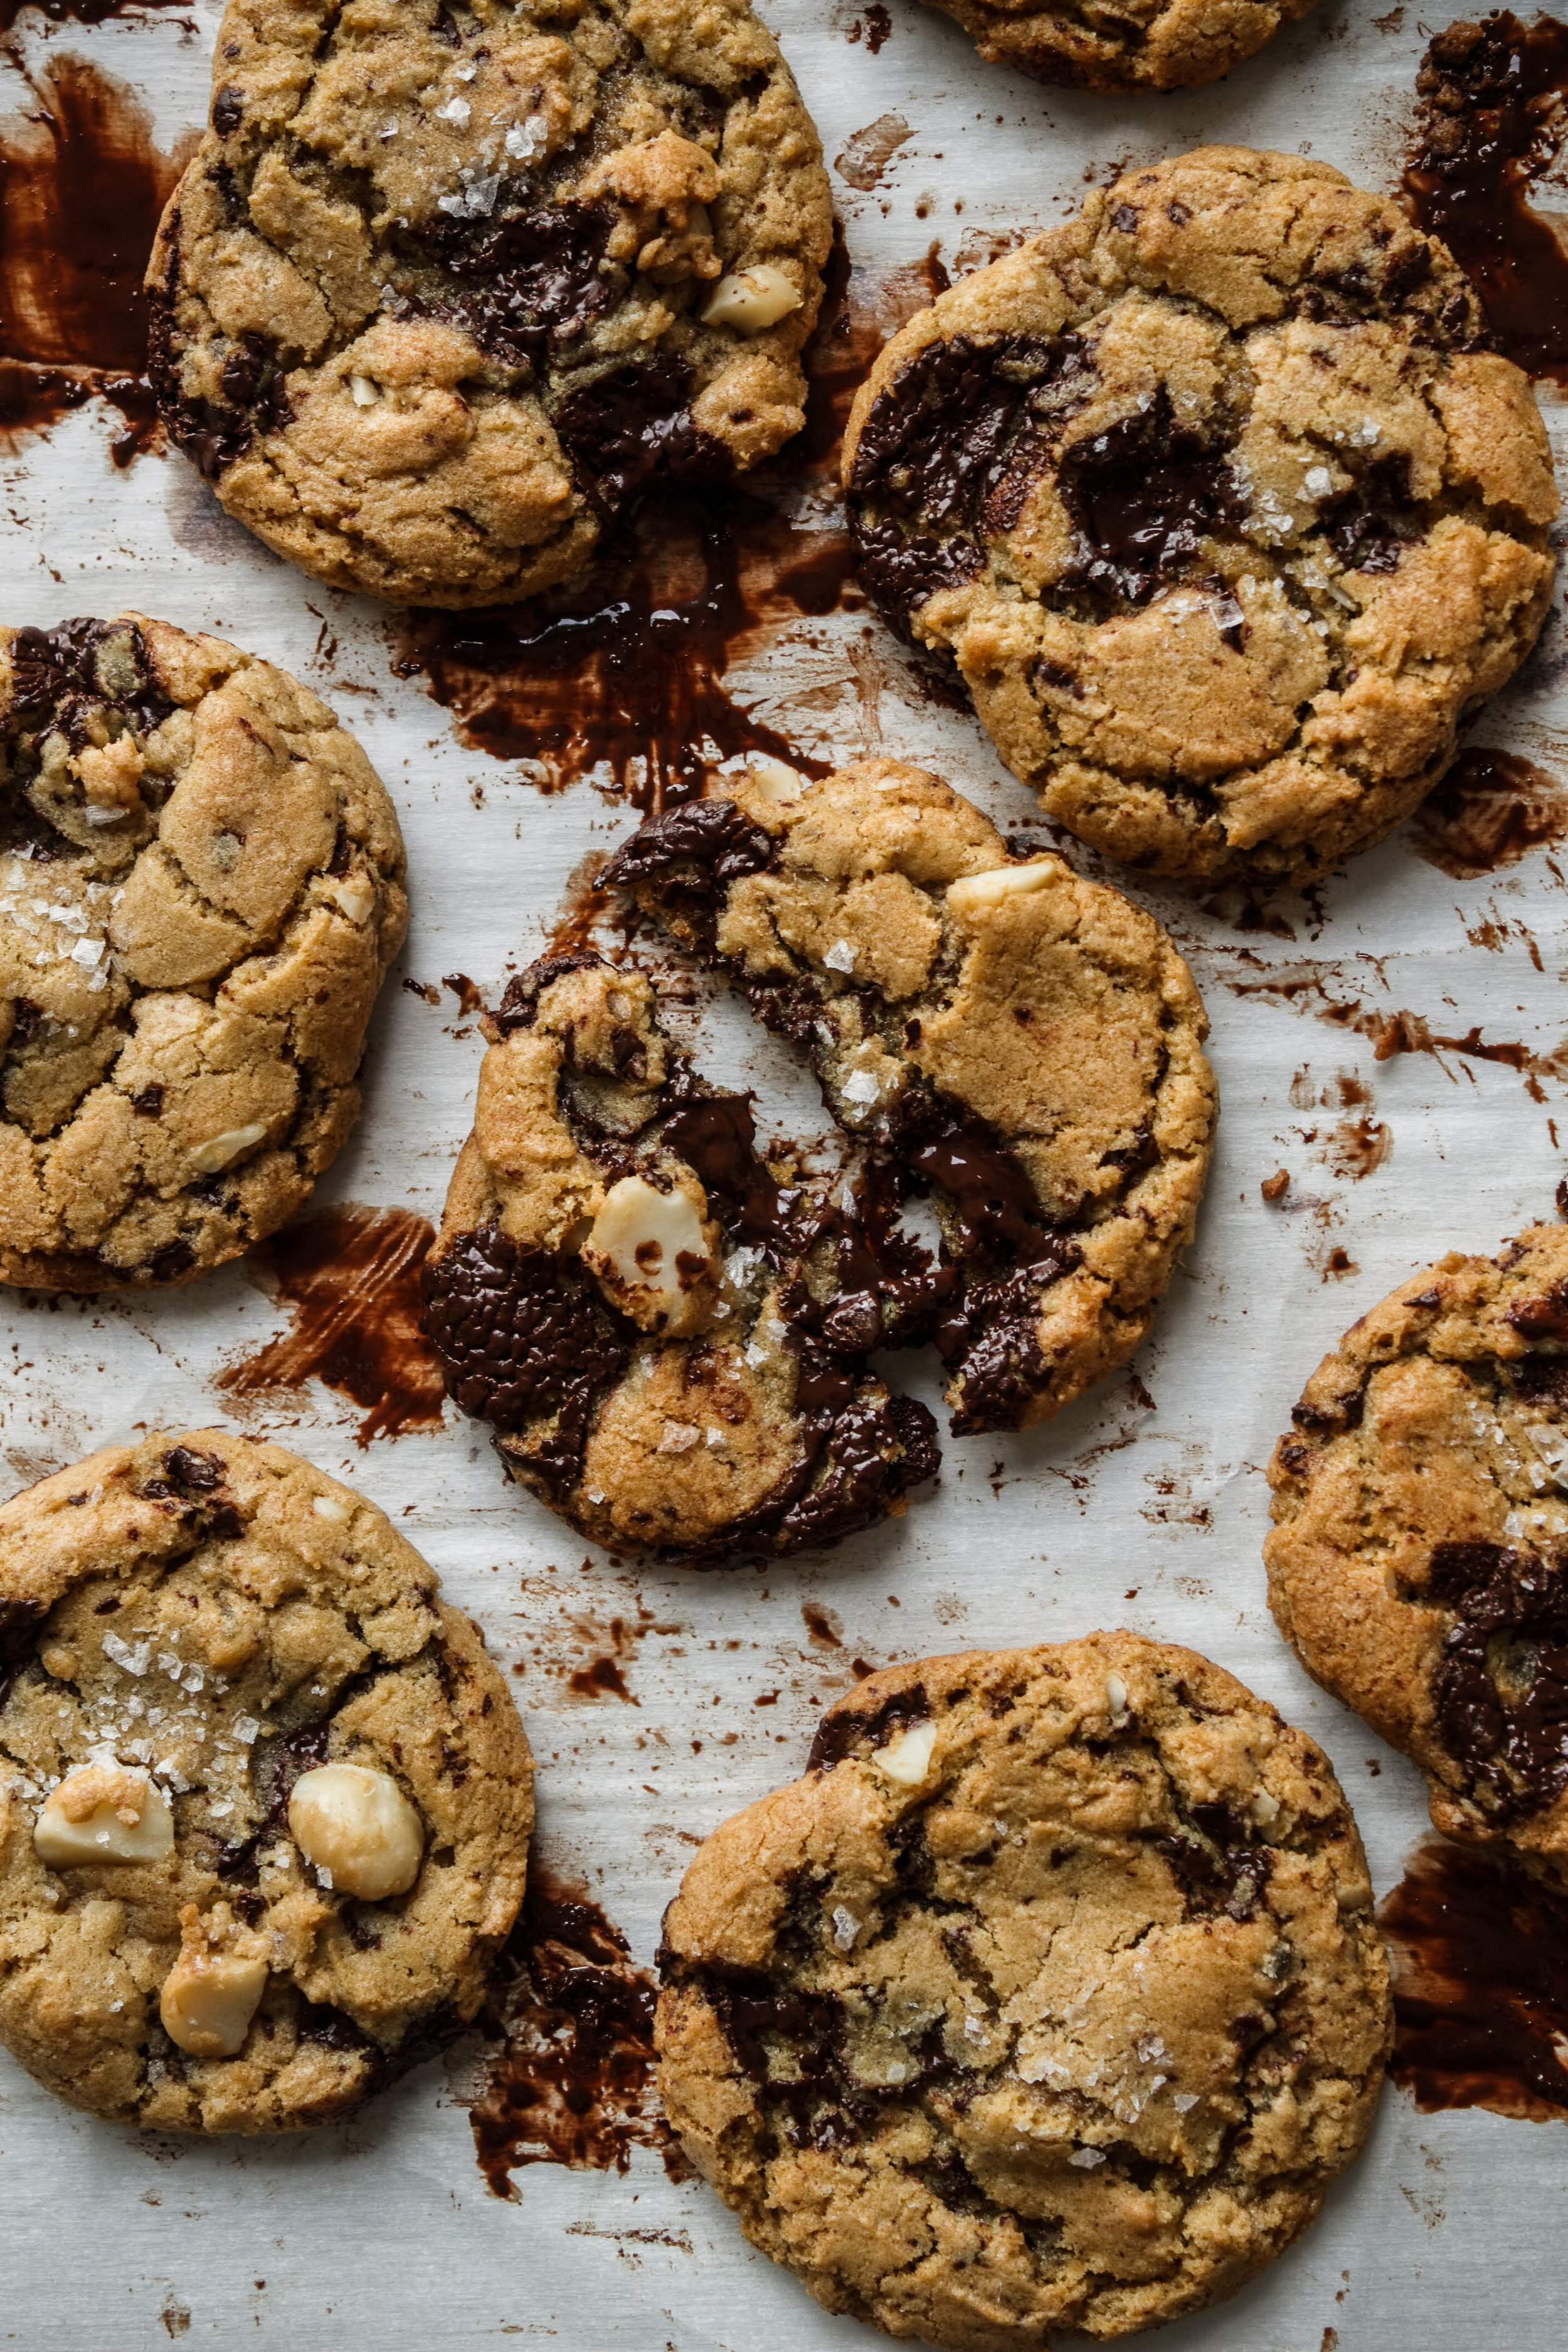 Chocolate chip macadamia cookies 8.jpg